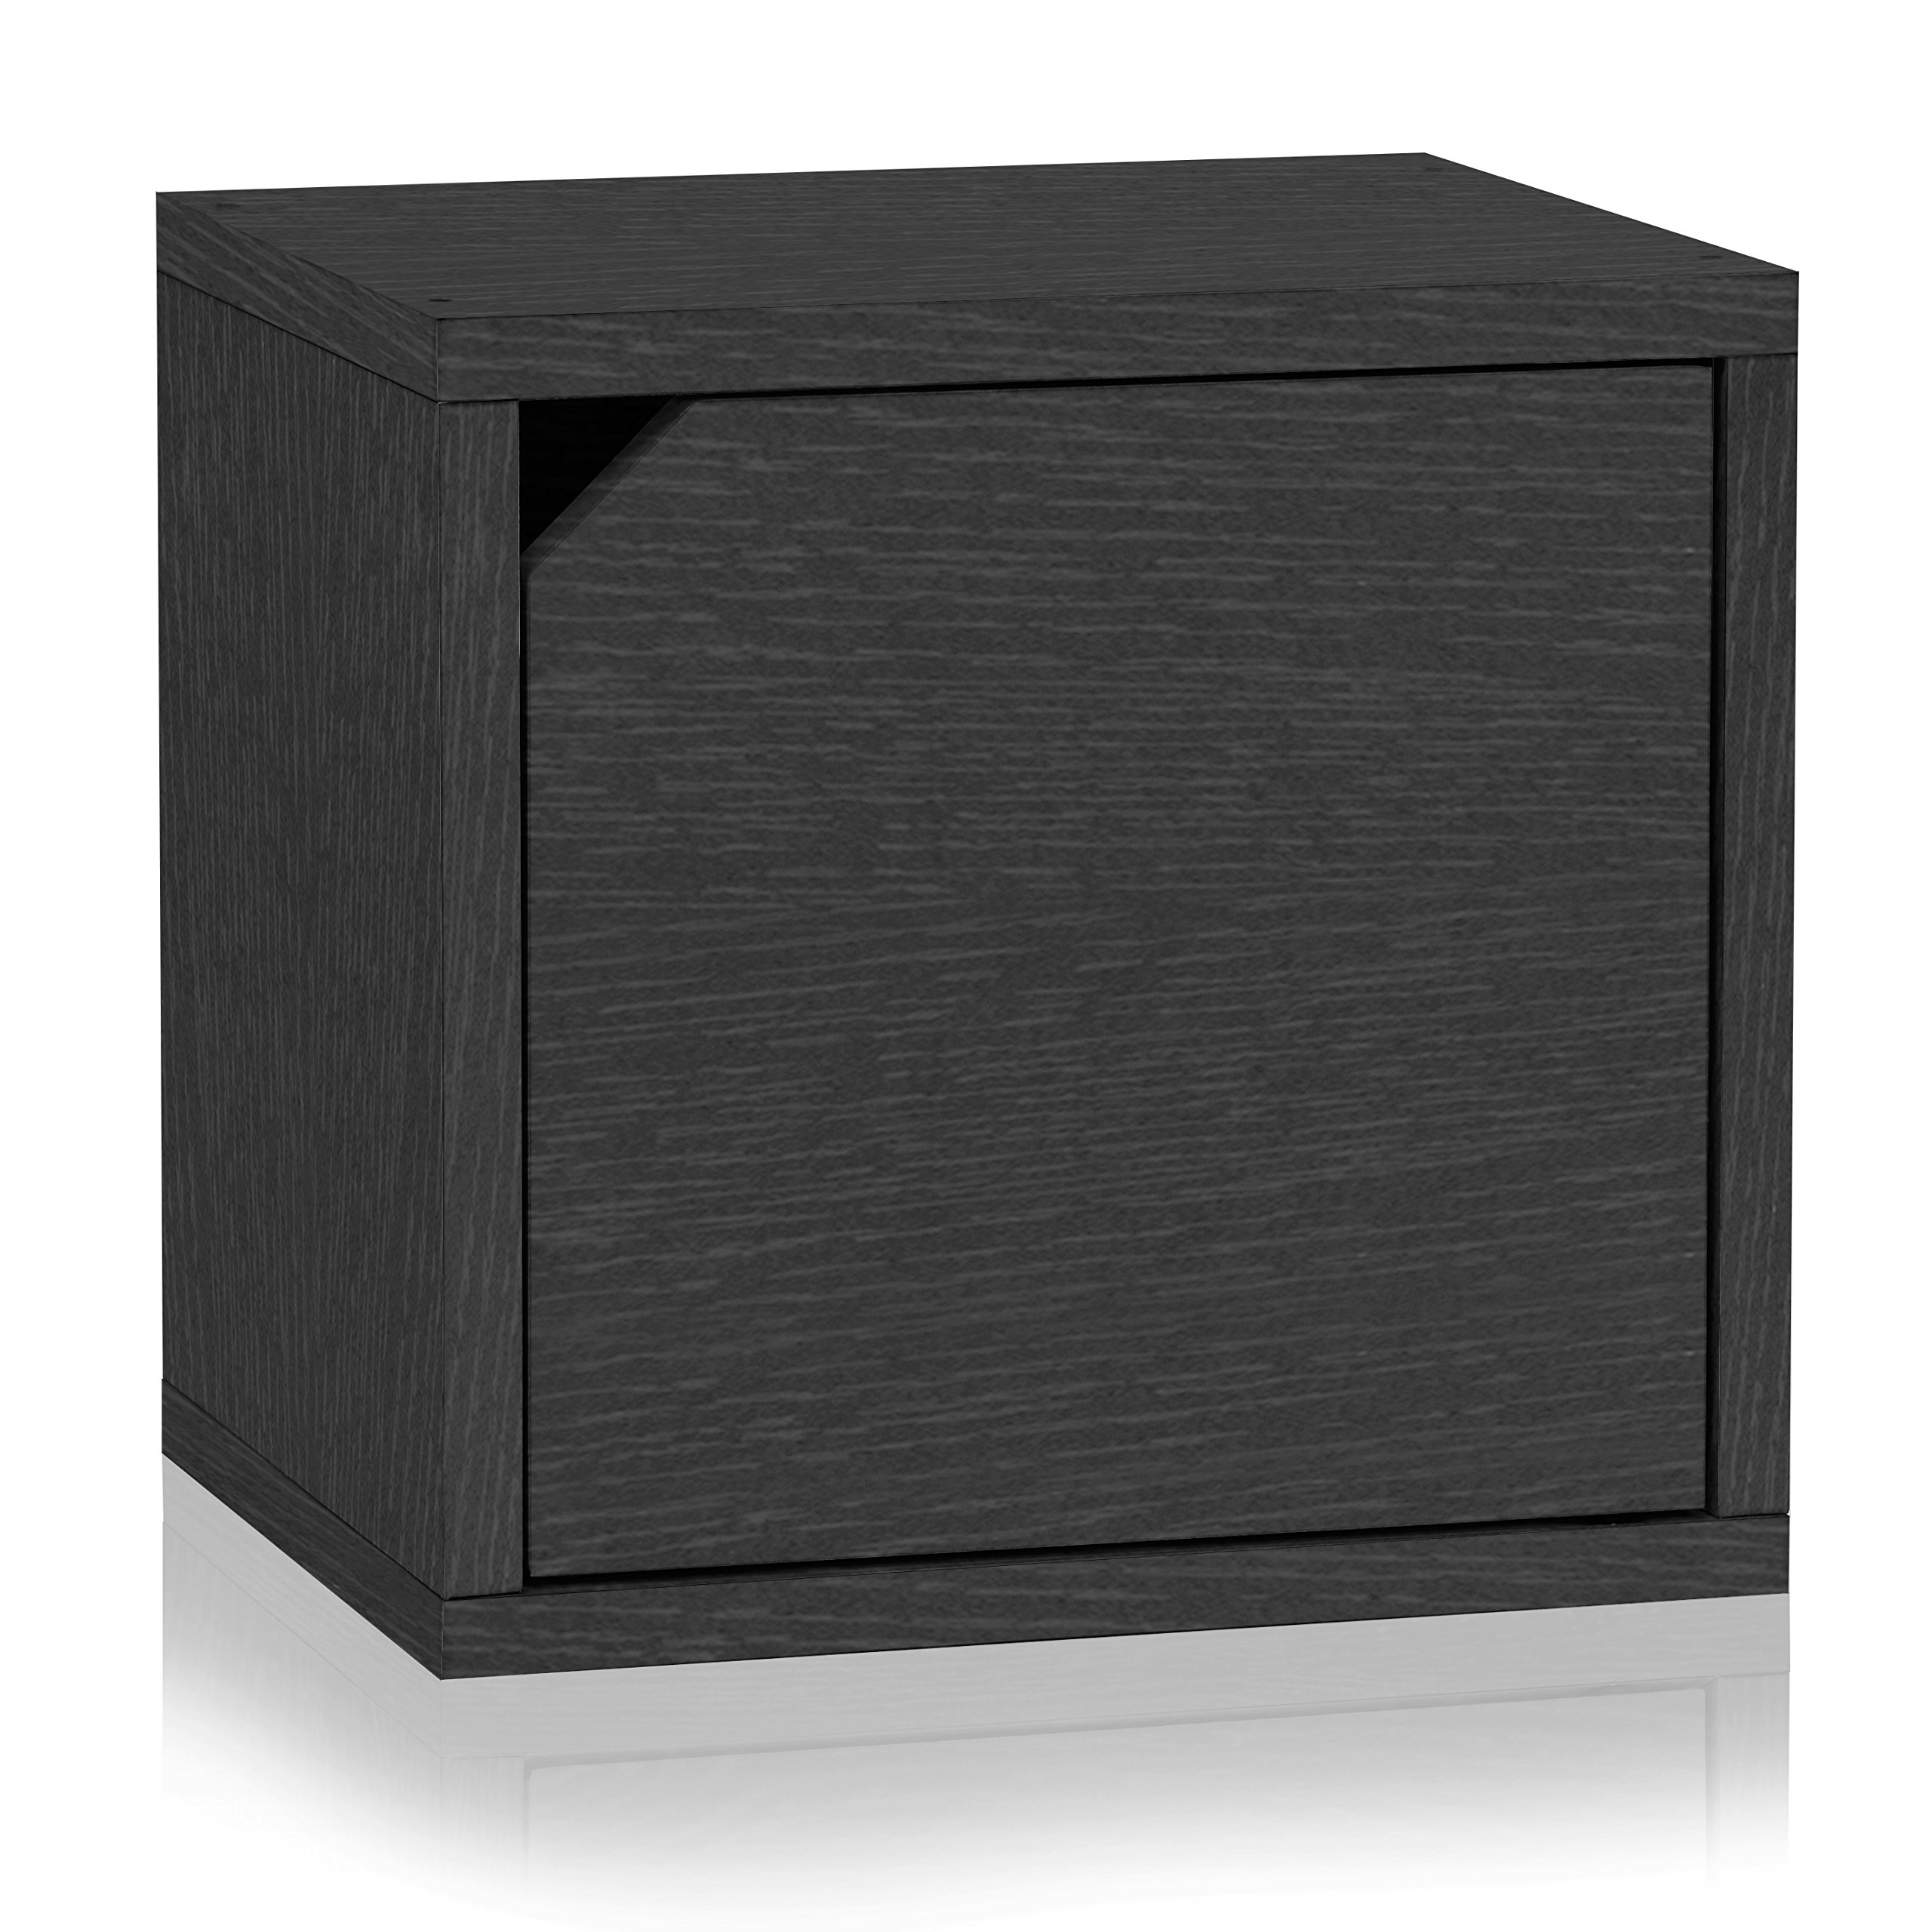 Way Basics Eco Stackable Connect Storage Cube with Door, Black Wood Grain